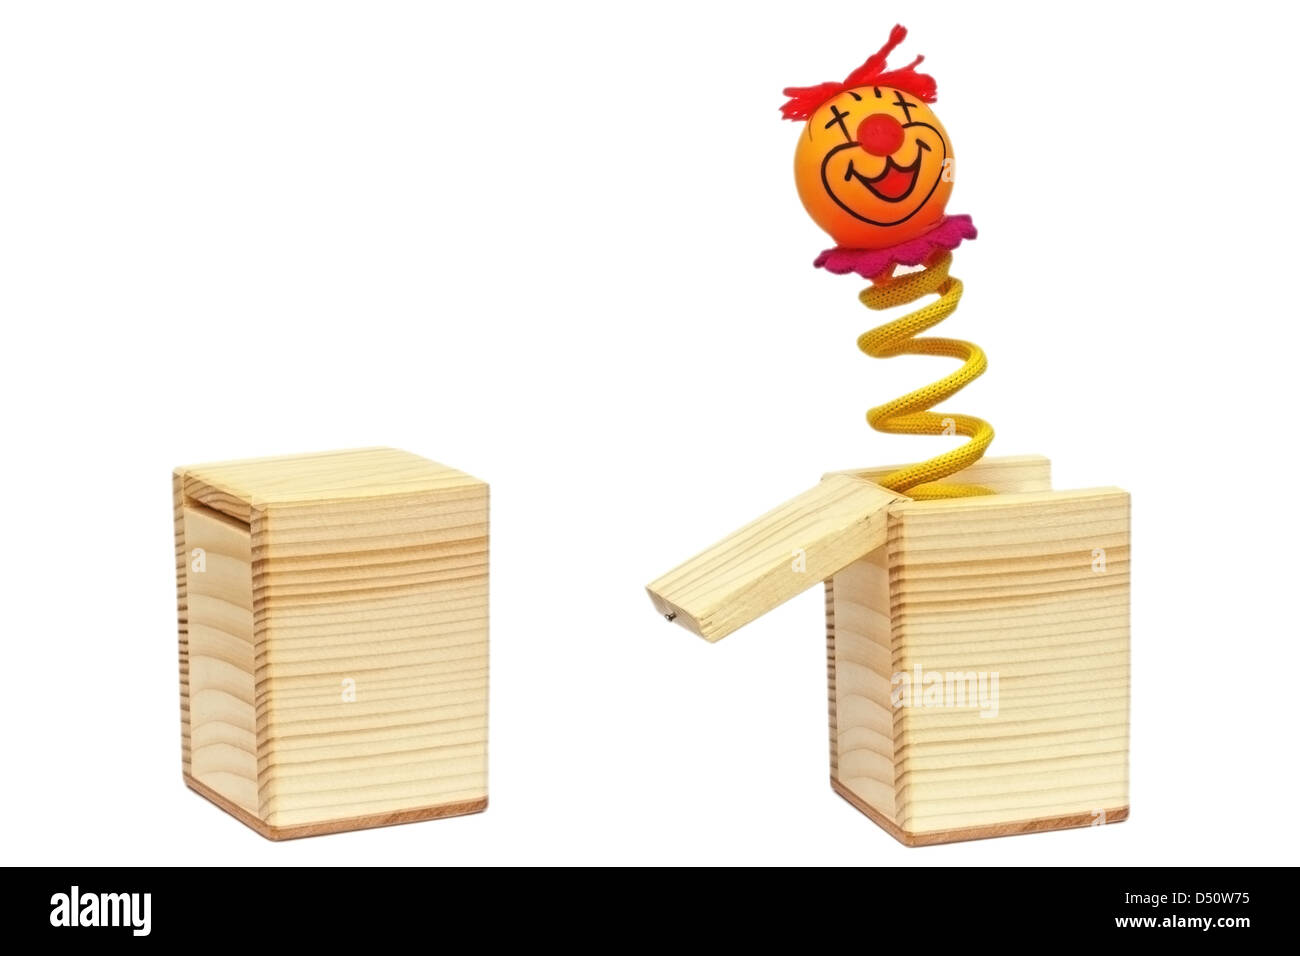 tricky toy with clown on spring coming out from a wooden box - Stock Image